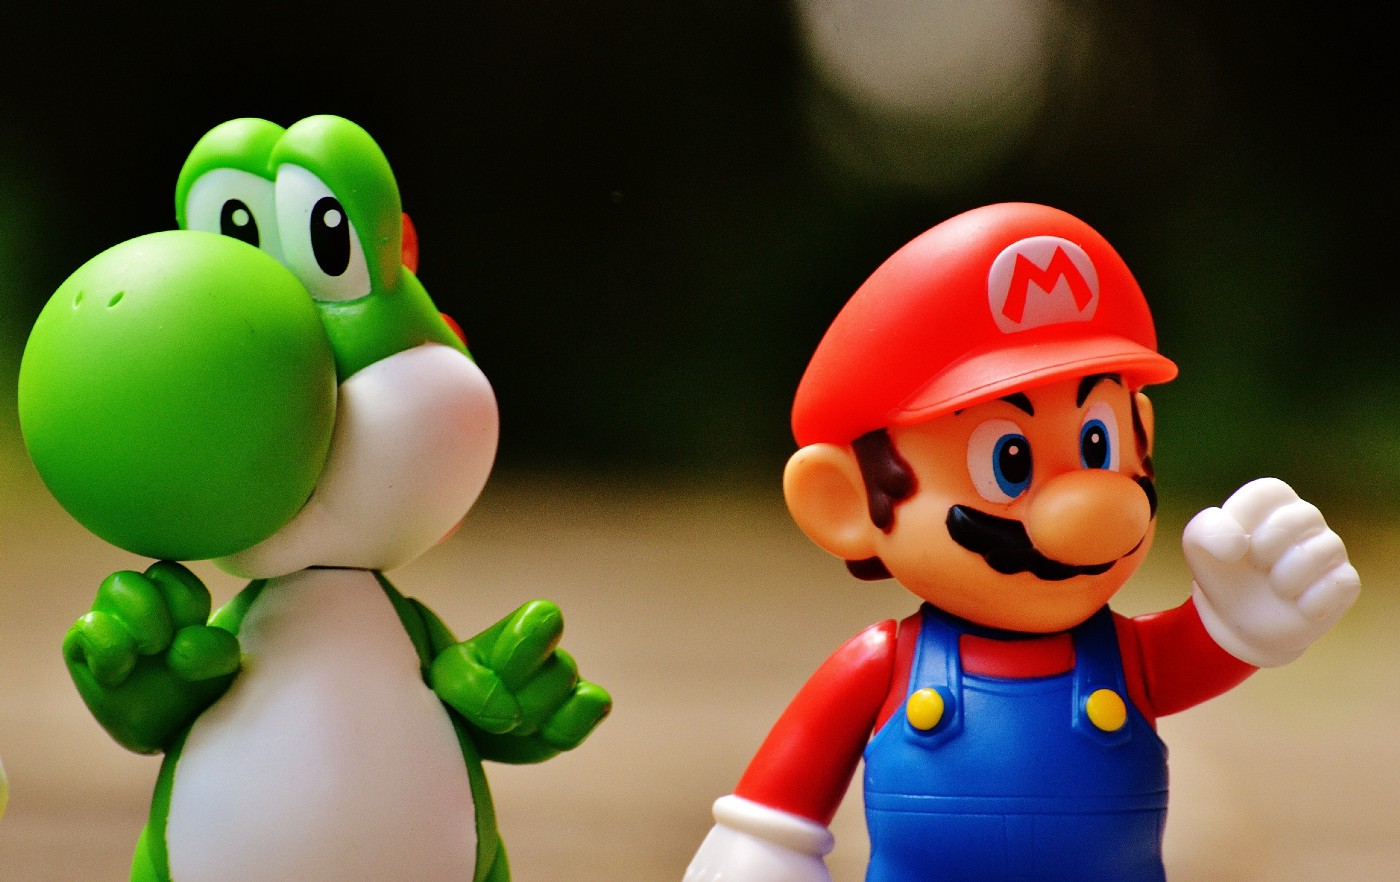 Mario and Yoshi standing on a desk